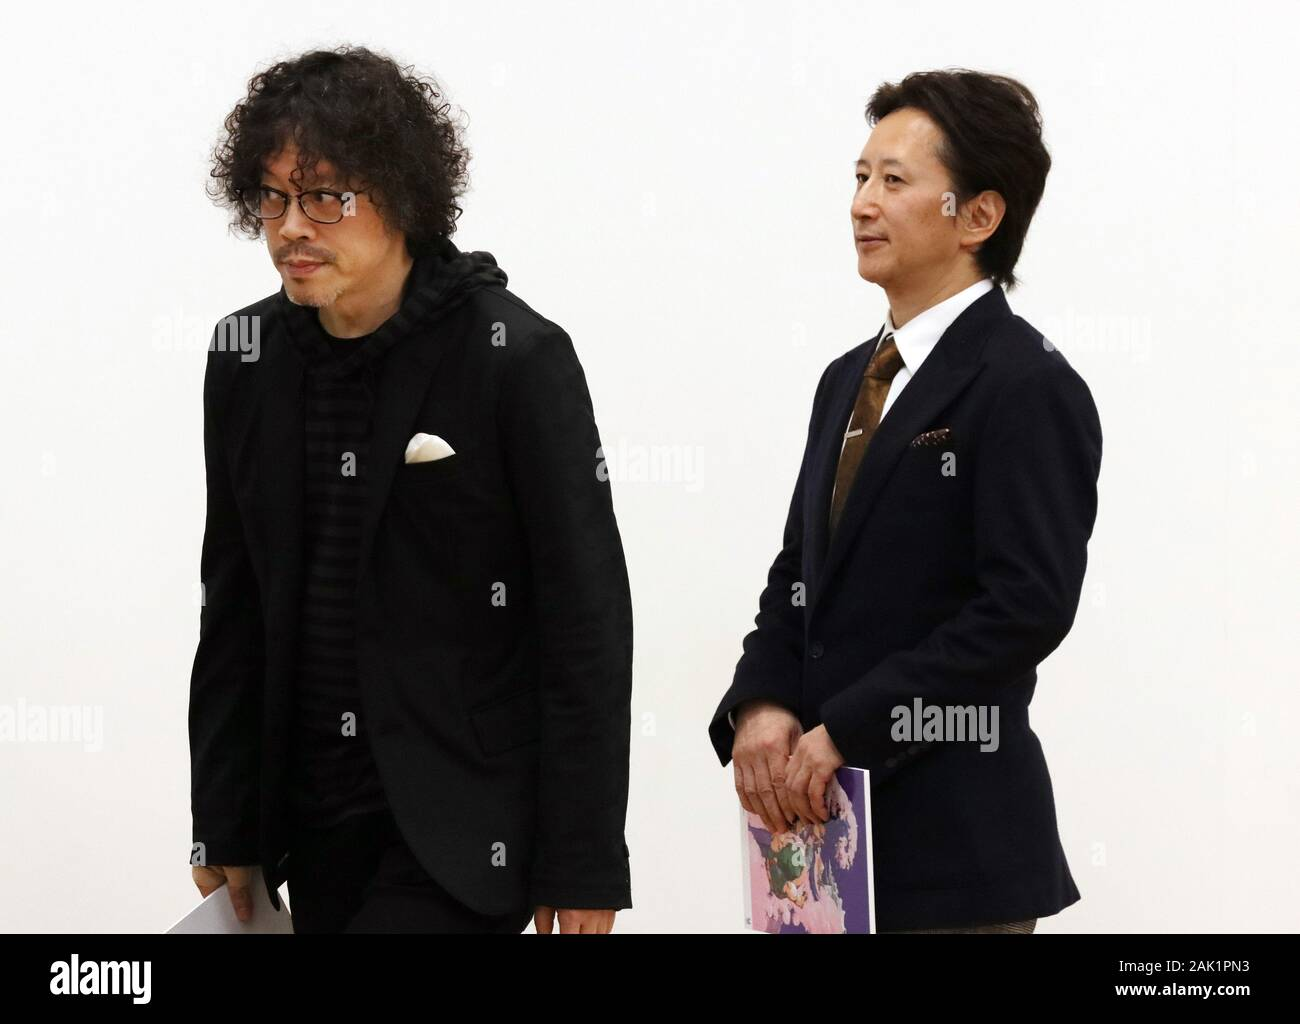 Tokyo Japan 6th Jan 2020 Comic Artists Naoki Urasawa L And Hirohiko Araki R Attend The Opening Ceremony For The Tokyo 2020 Olympics And Paralympics Official Art Posters Exhibition At The Museum